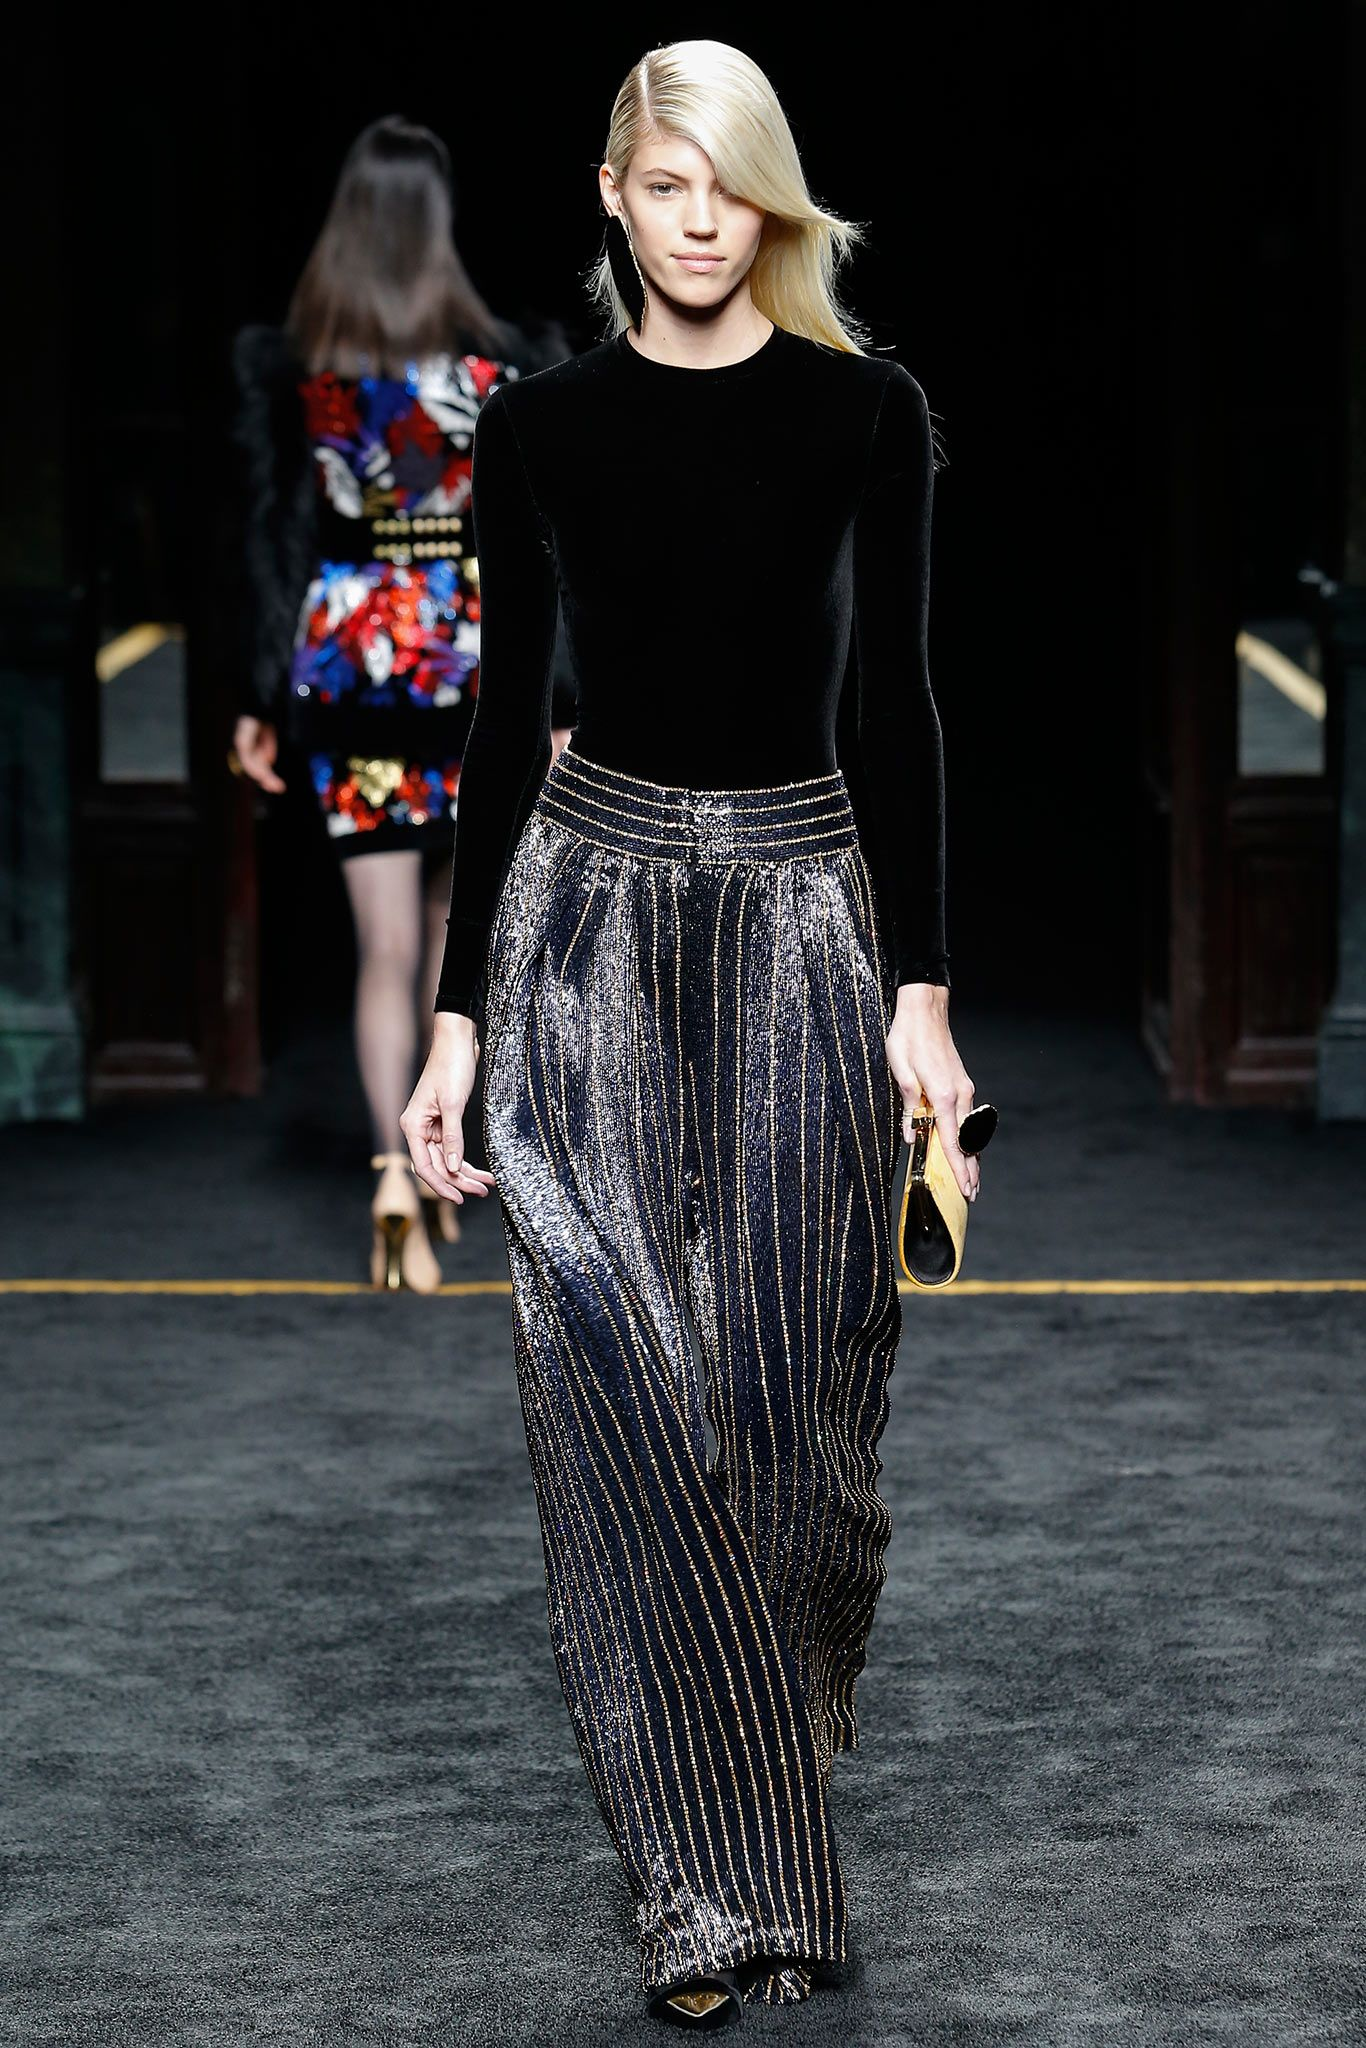 foto 3 Must-See Moments From Balmain's AW15 Show (Including Kim Kardashian's New Blonde Bob)